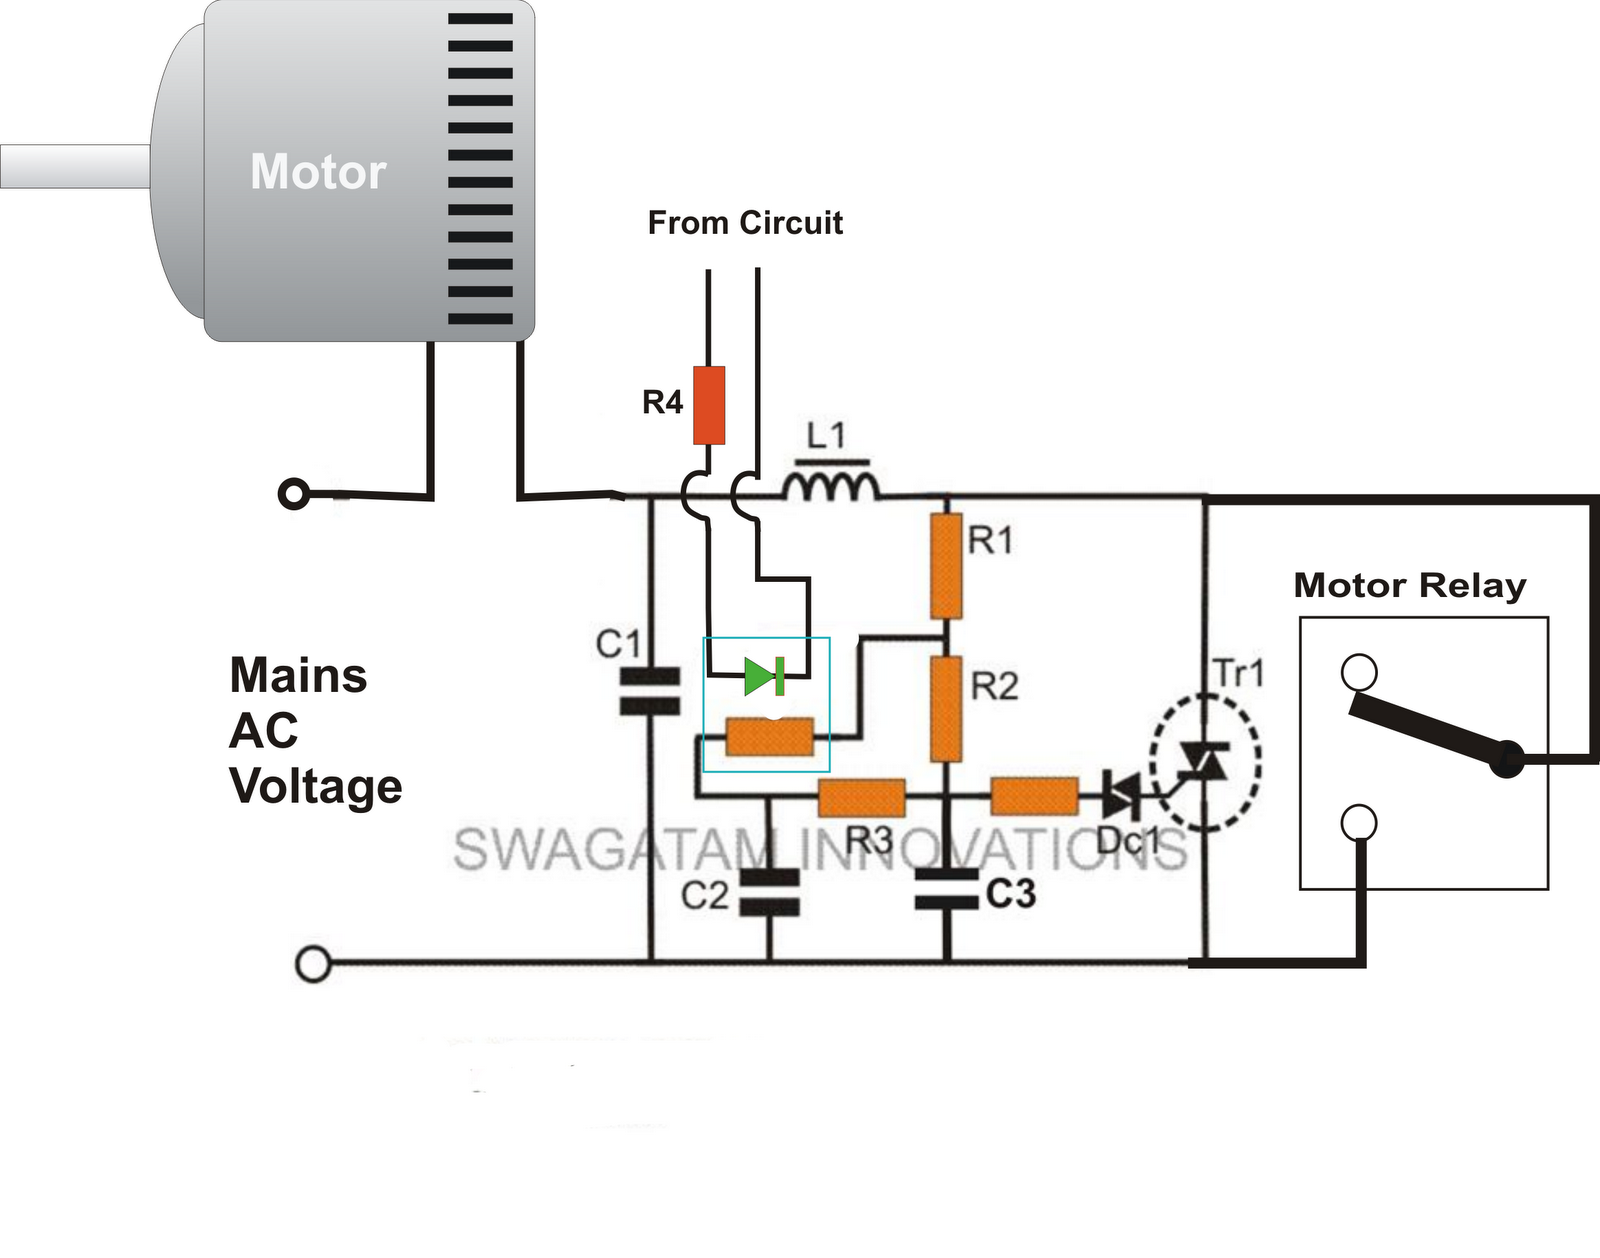 Tutorial Switches And Relays Electronic Circuits Diagram When Heavy Motor Systems Or High Current Motors Are Involved Initial Switch On Surge Often Becomes An Issue This Tends To I